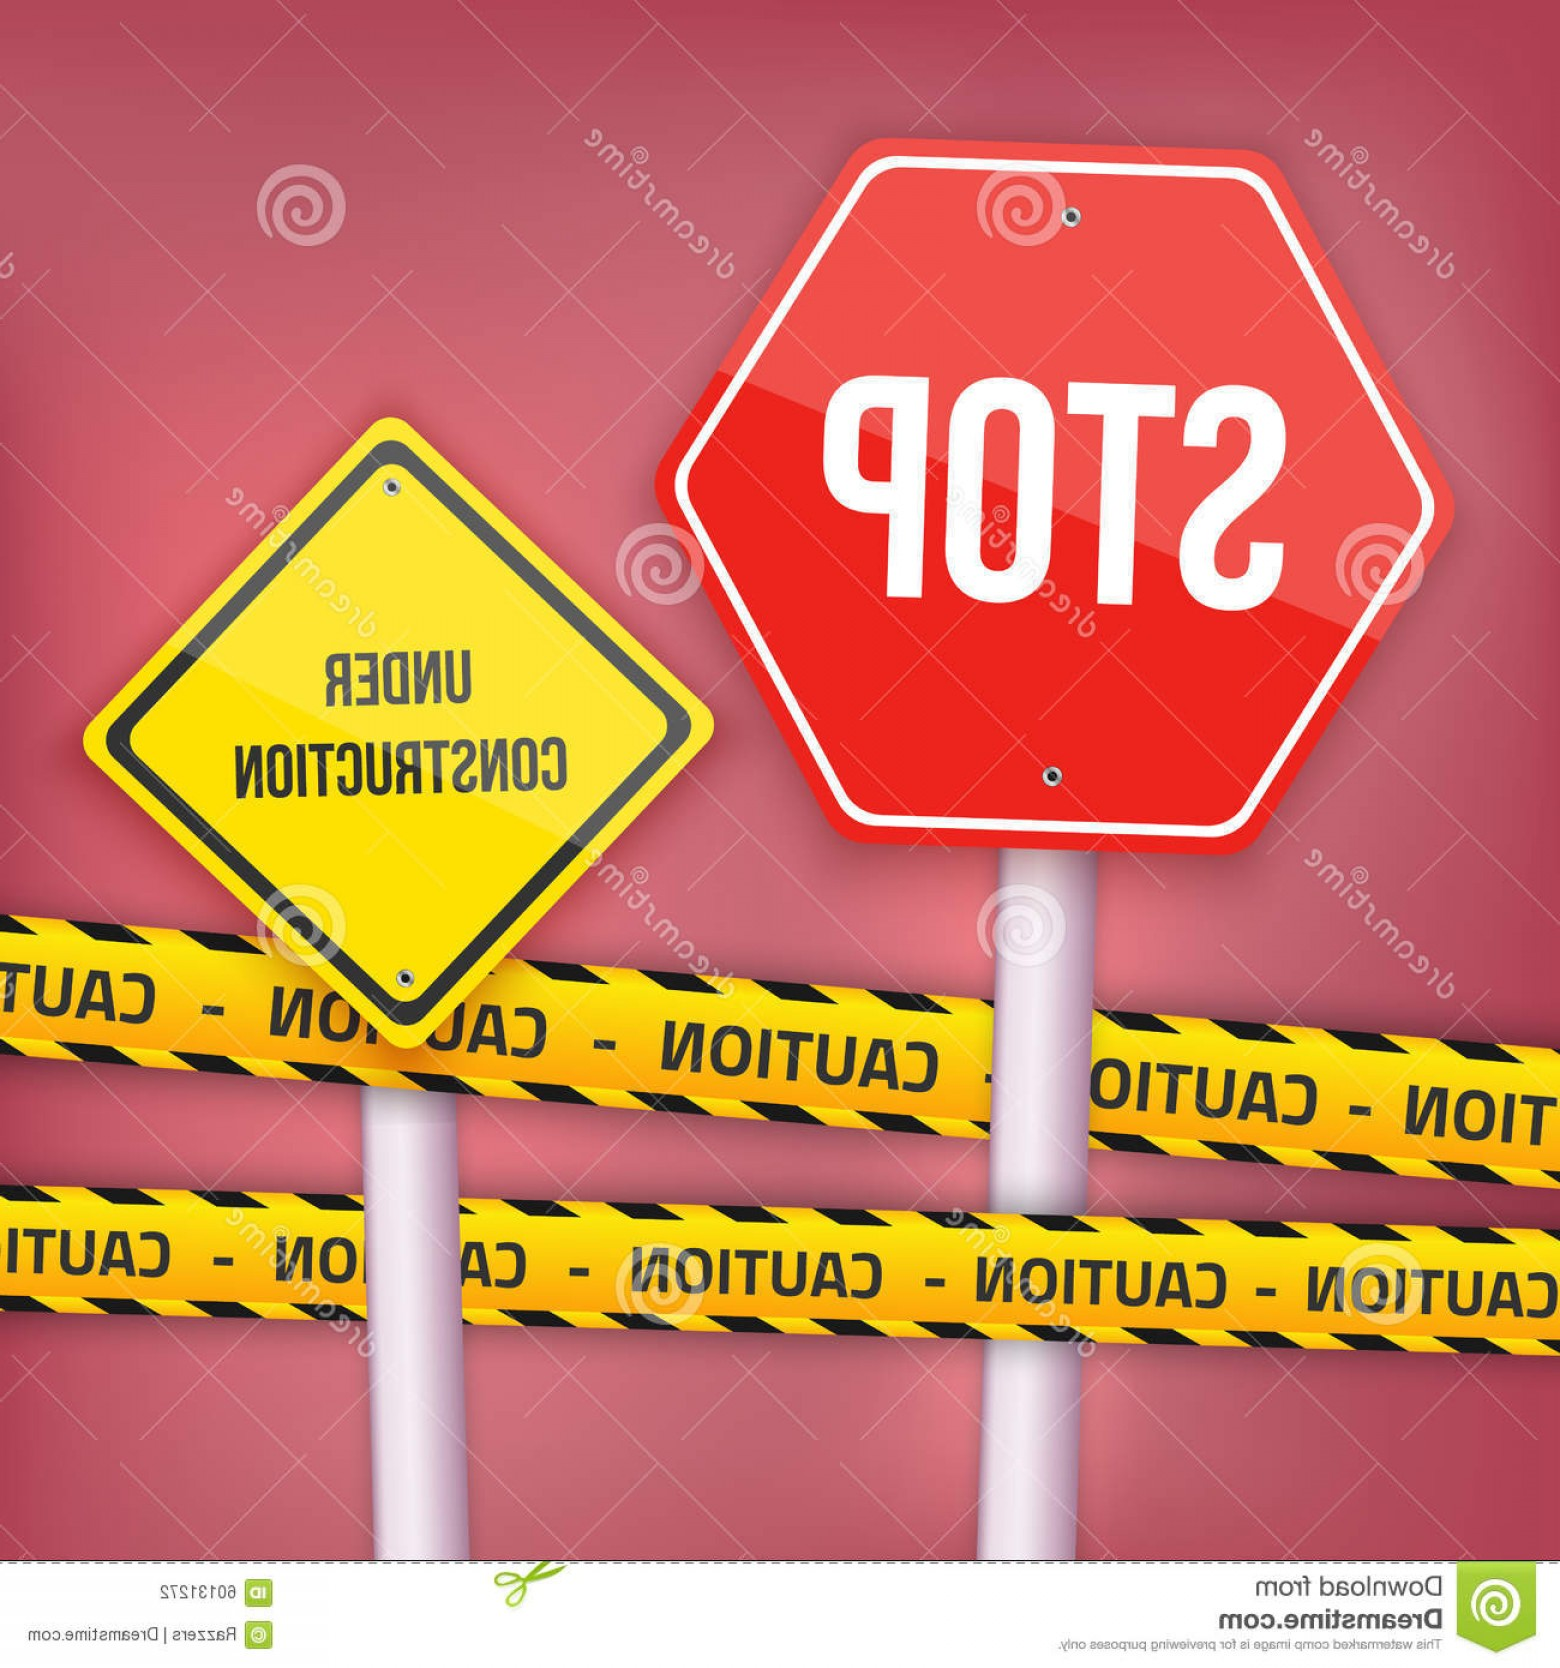 Vector Under Construction Template: Stock Illustration Vector Stop Sign Website Under Construction Template Yellow Illustration Caution Police Line Image